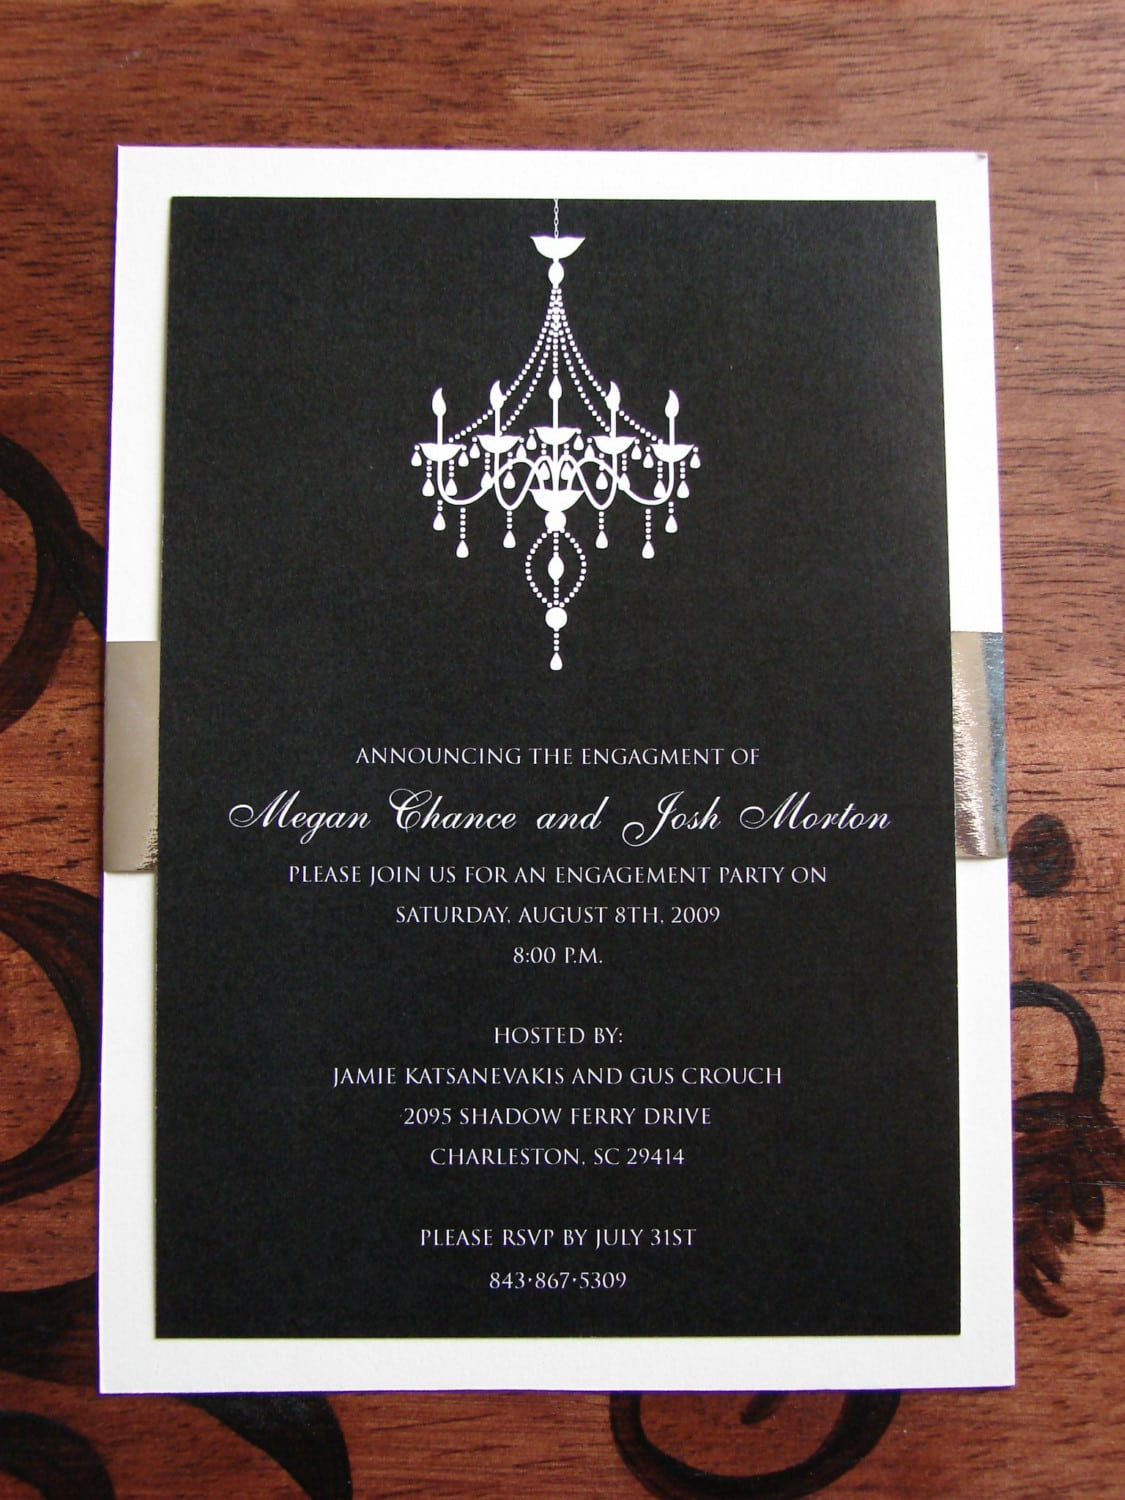 Black Tie Party Invitations - Mickey Mouse Invitations Templates